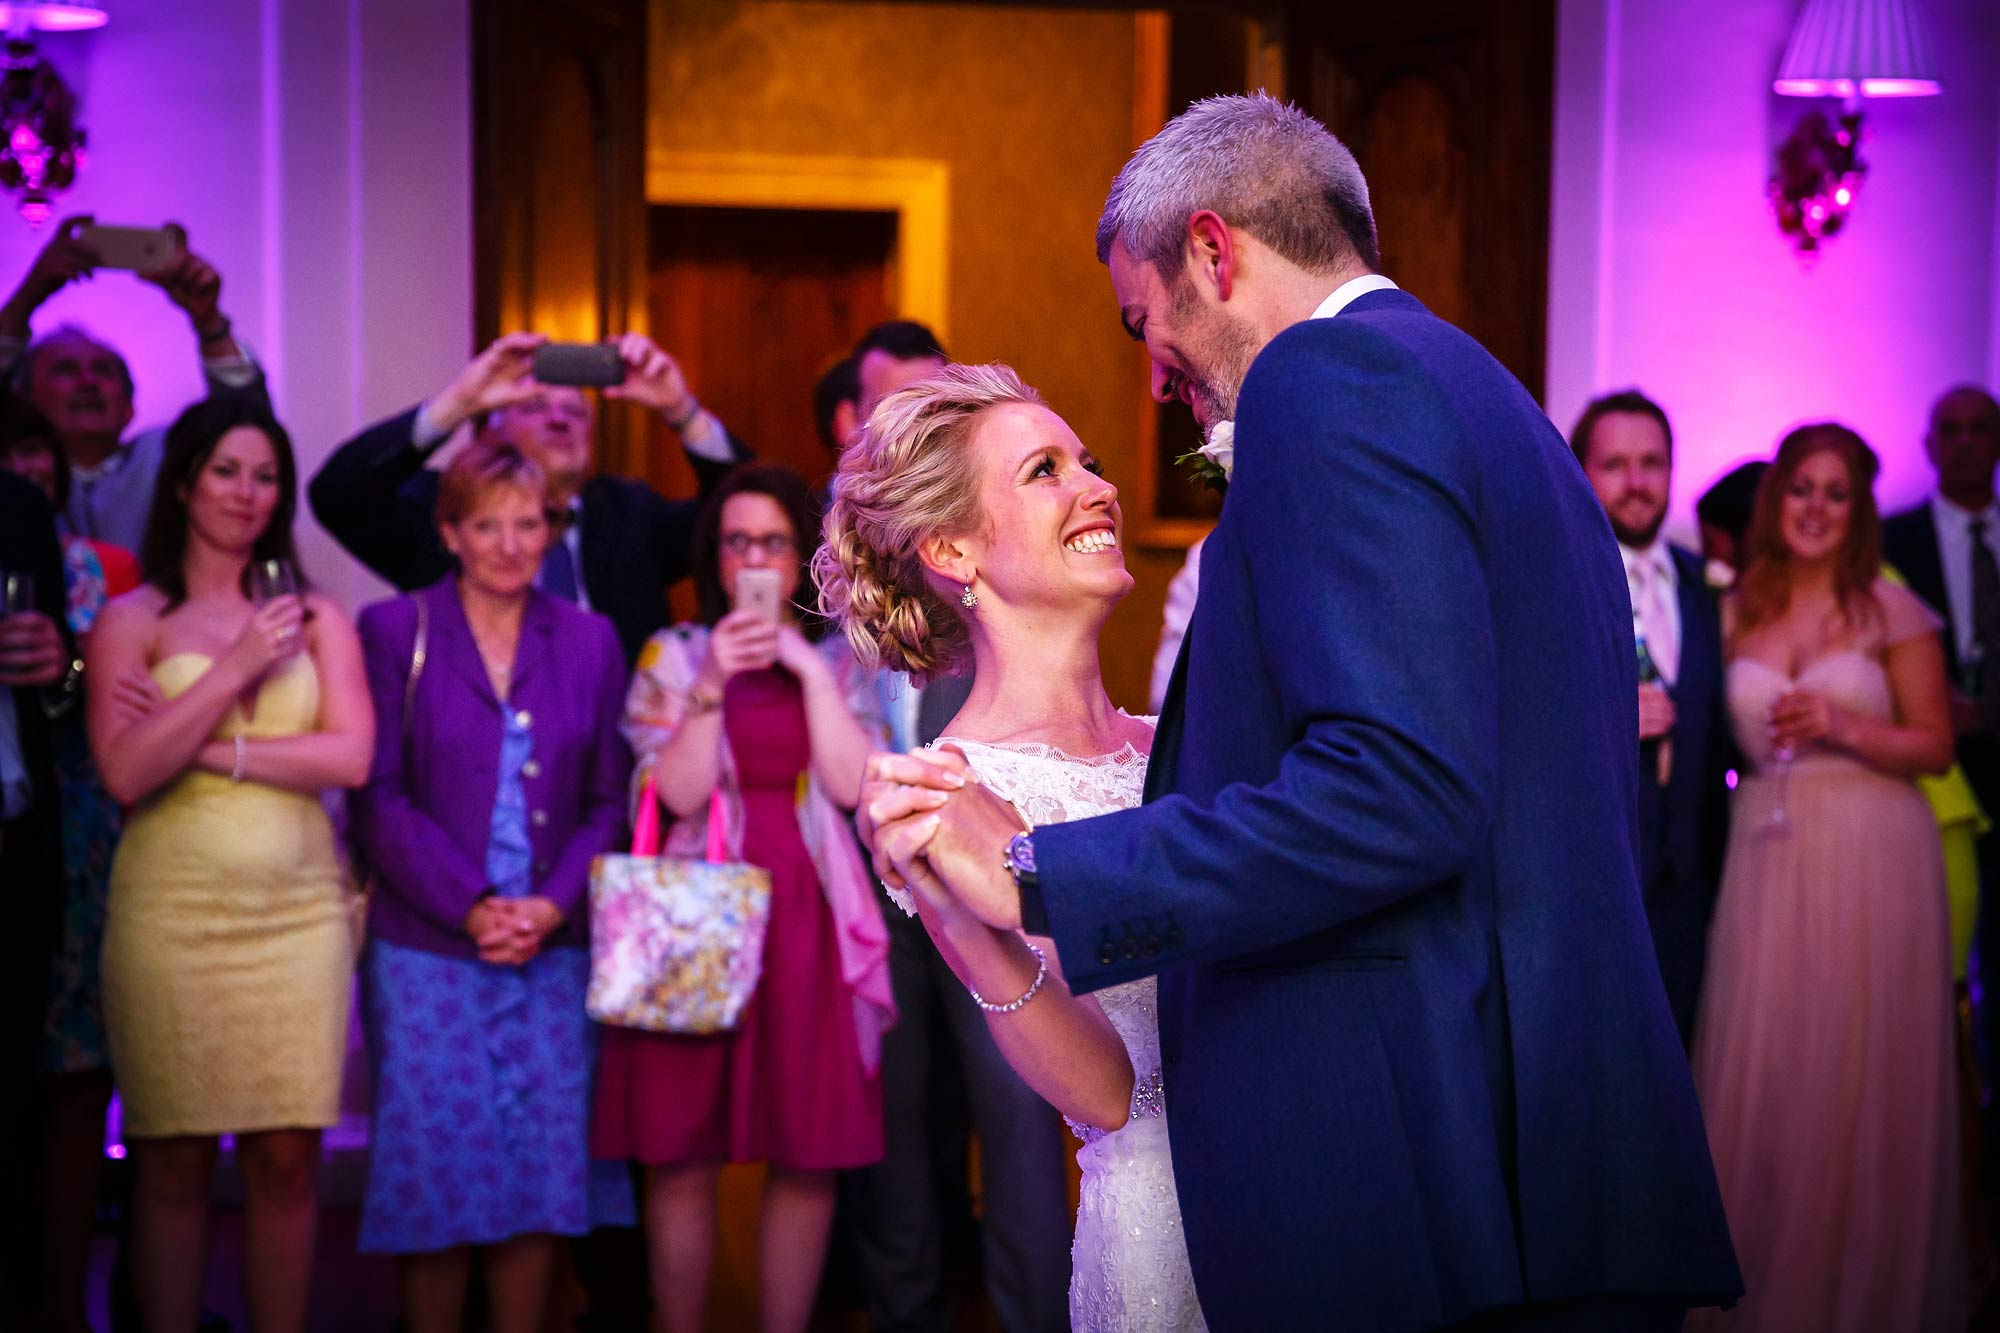 forst dance at Hedsor House Wedding